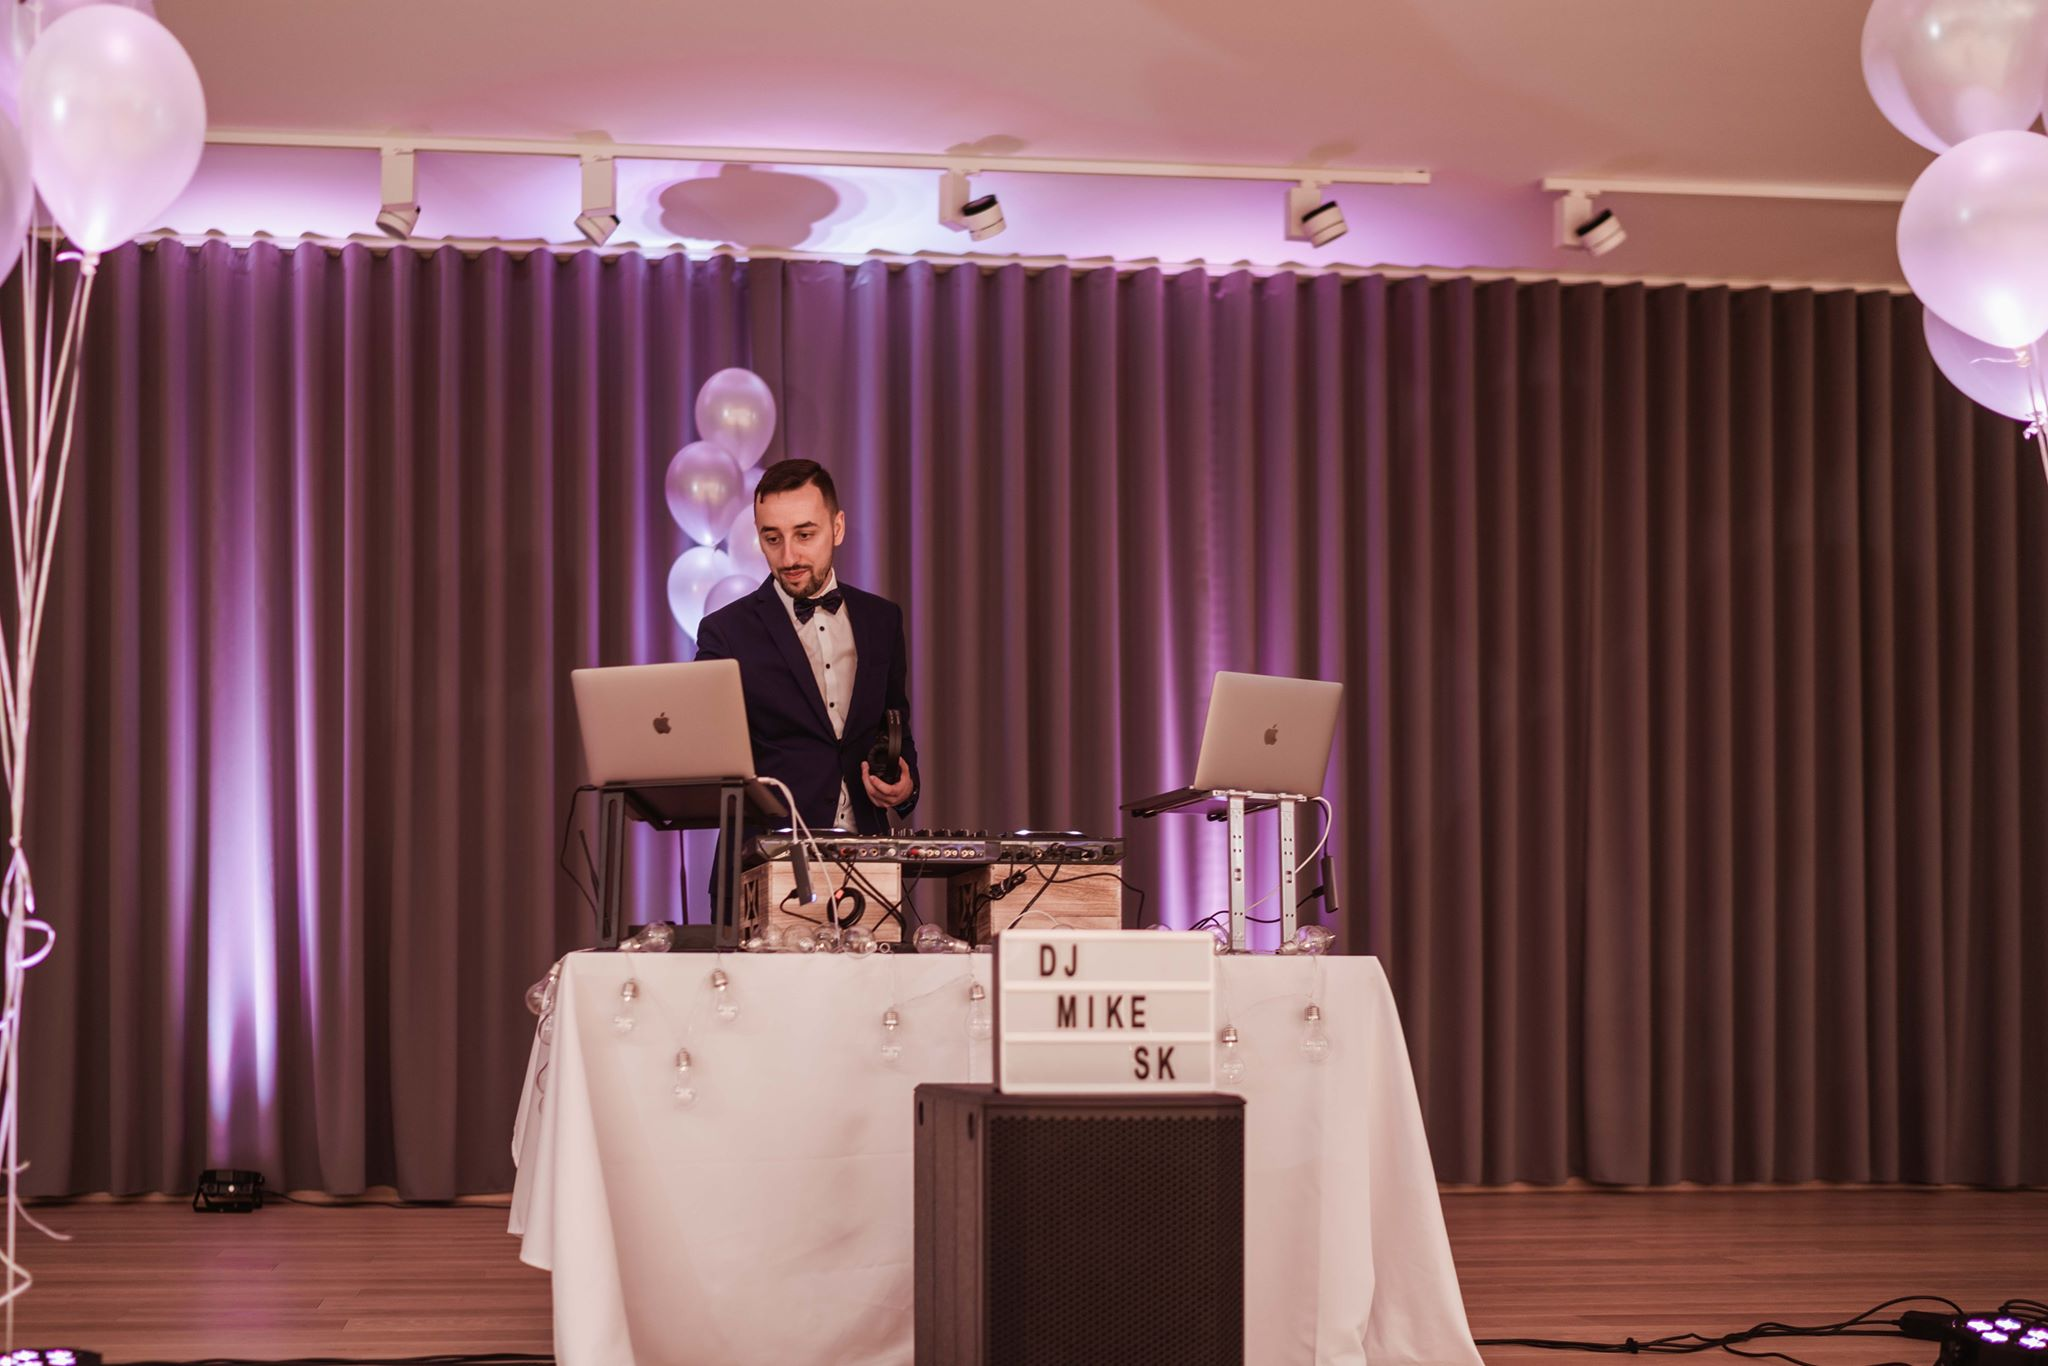 dj-mike-skusenosti-referencie-cena-wedding-slovakiajpg